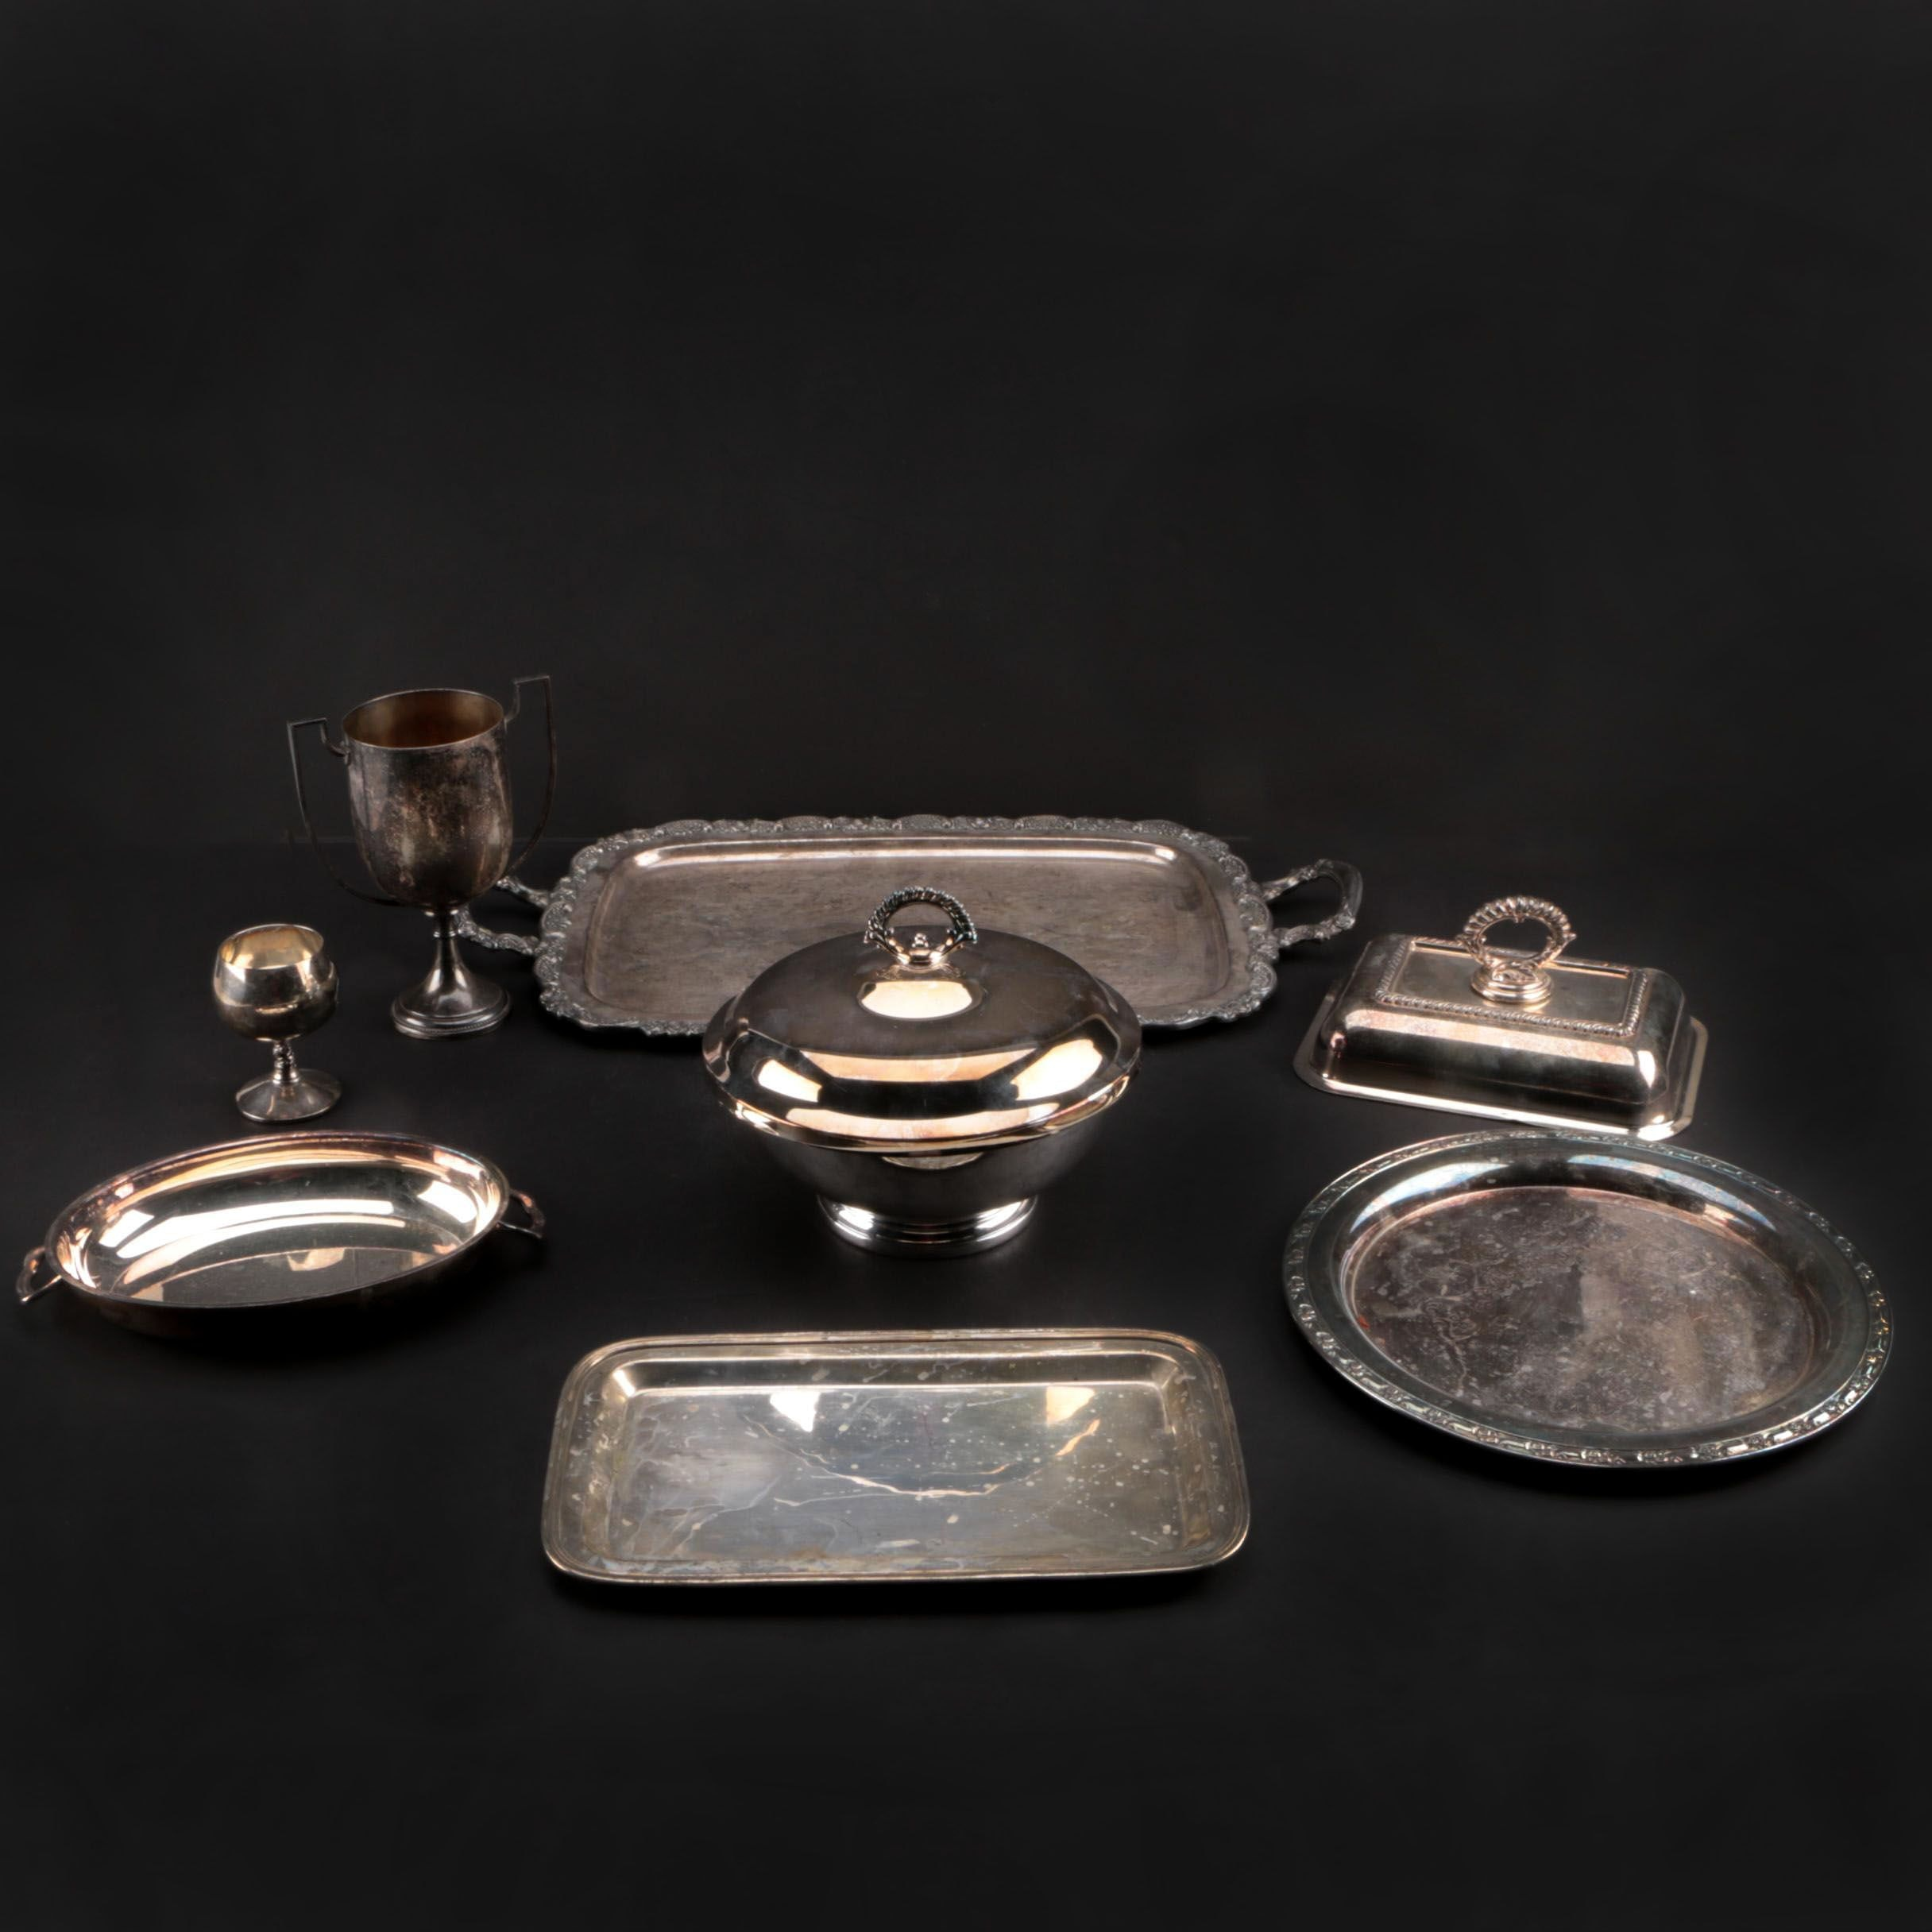 Gorham, Oneida and Other Silver Plate Serveware